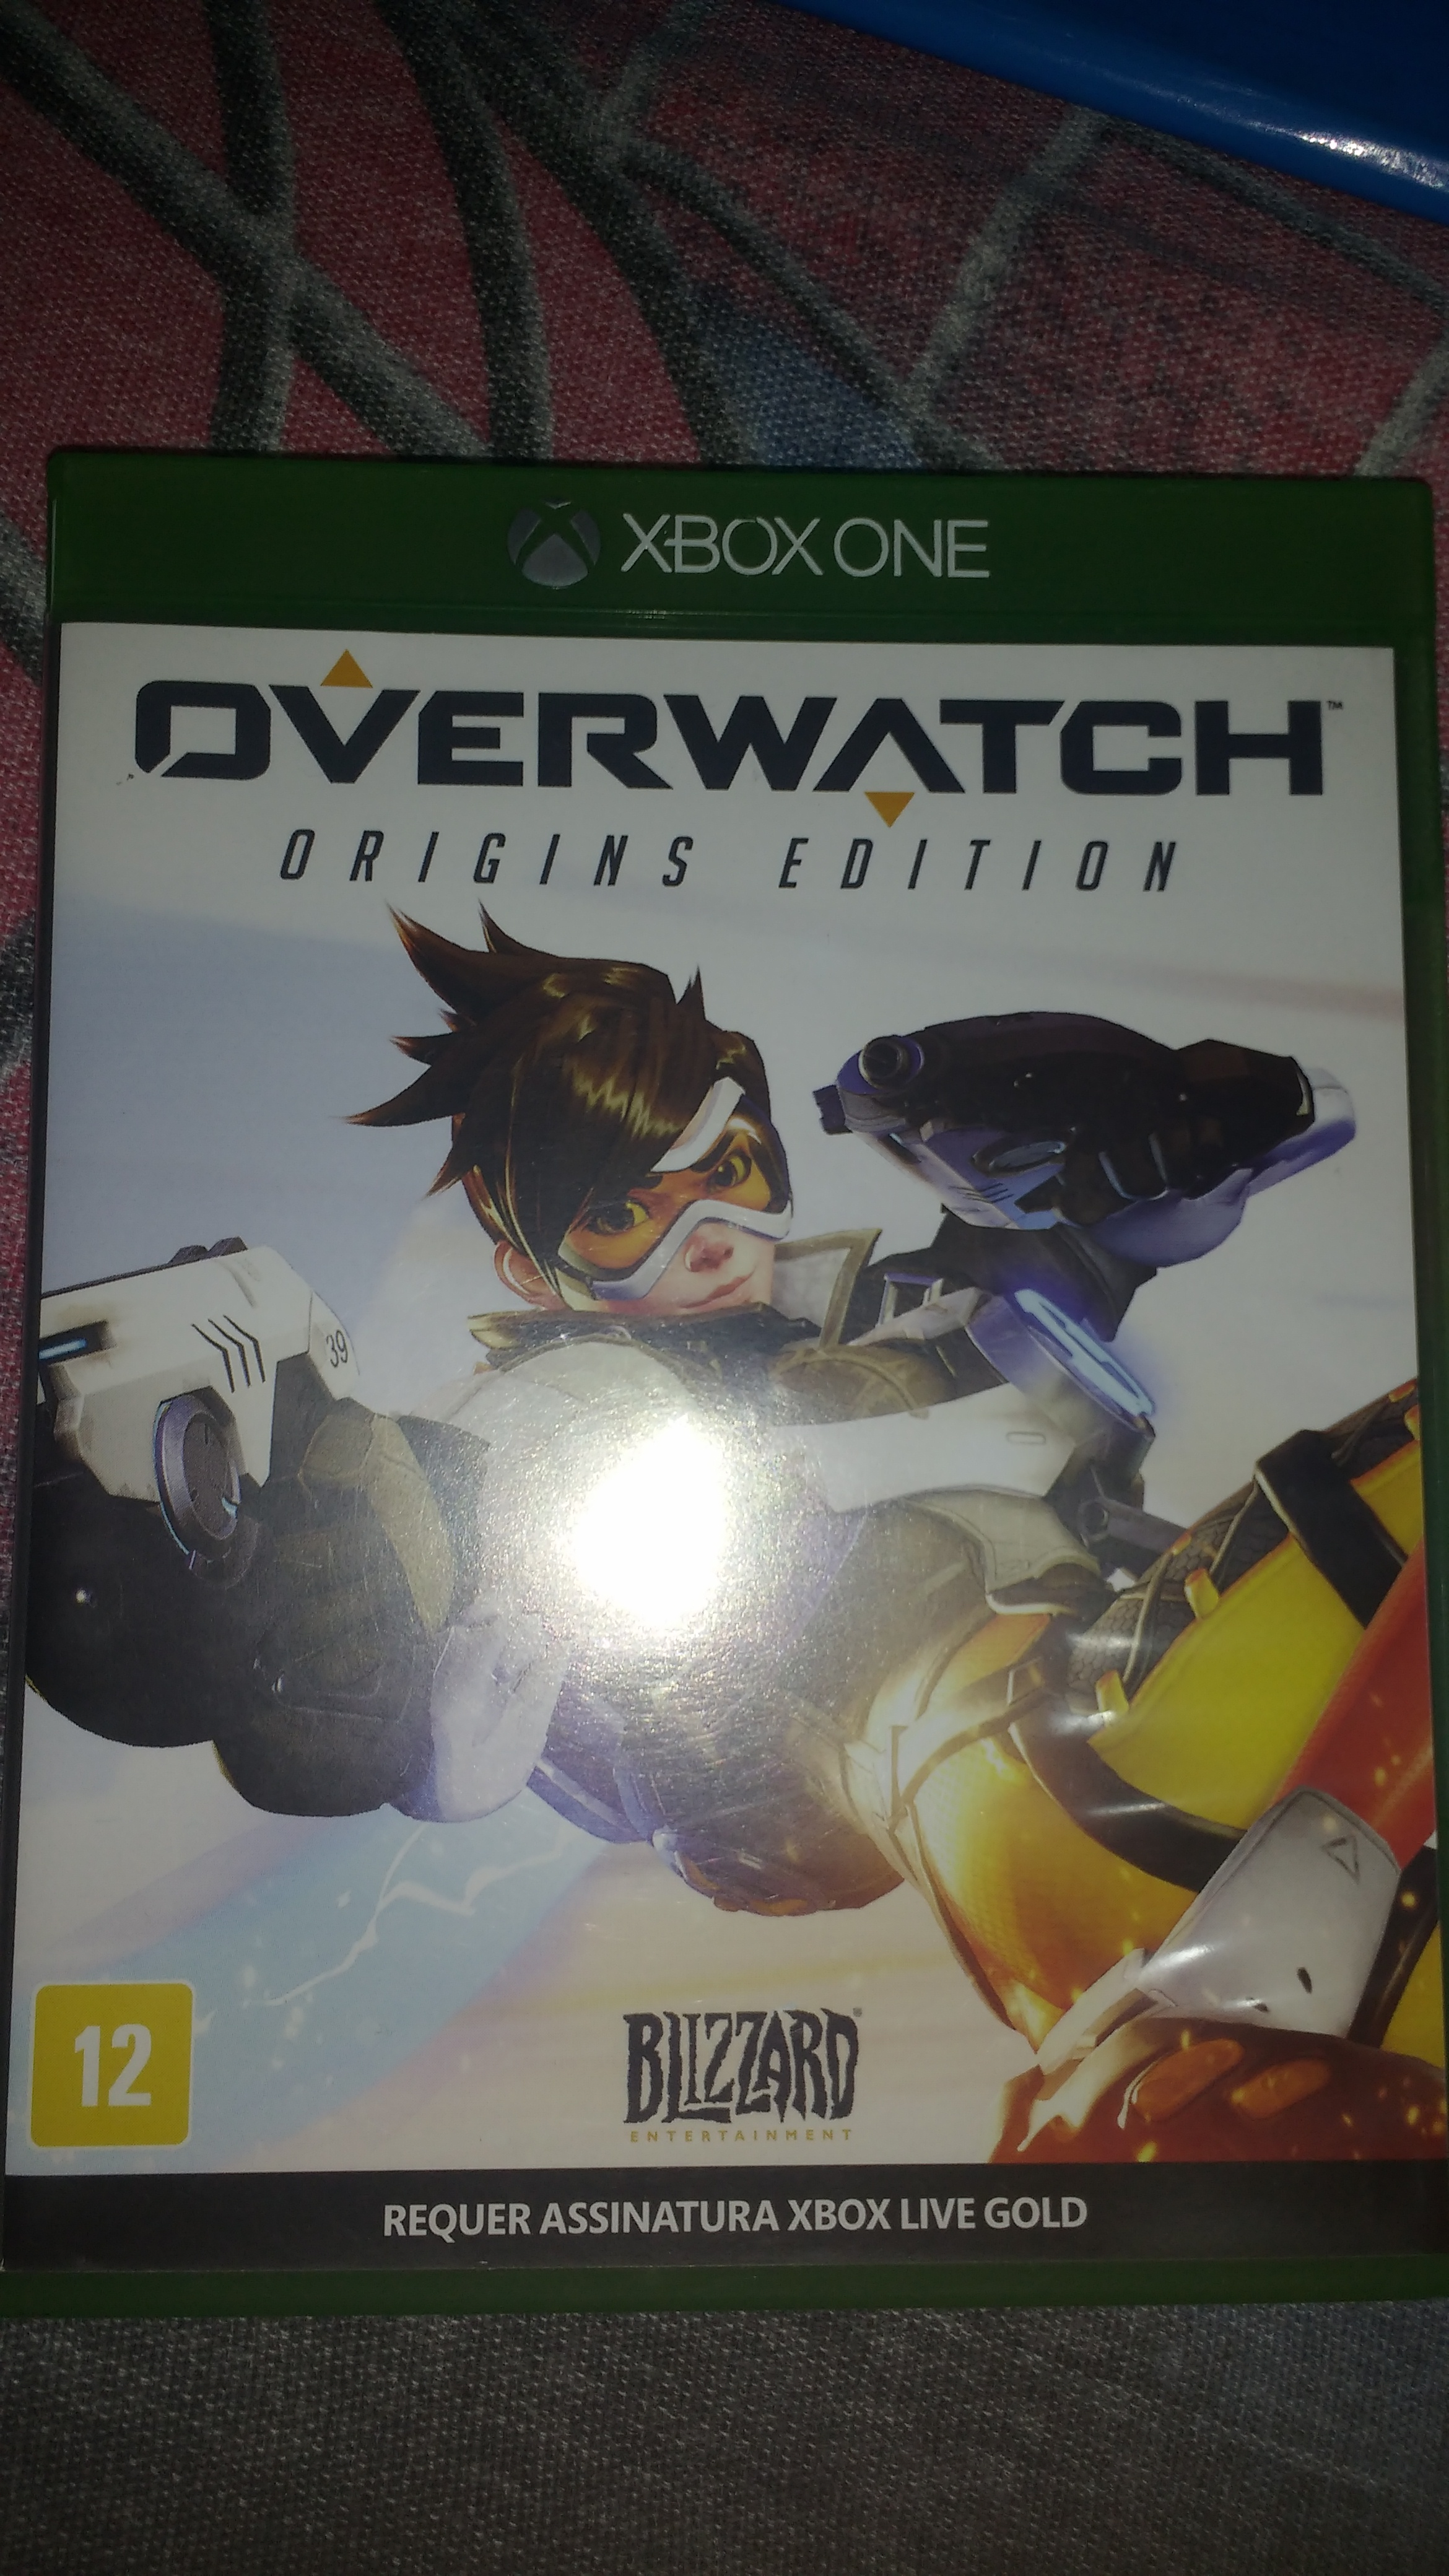 Overwatch: Origins Edition Physical Media Not Recognized by